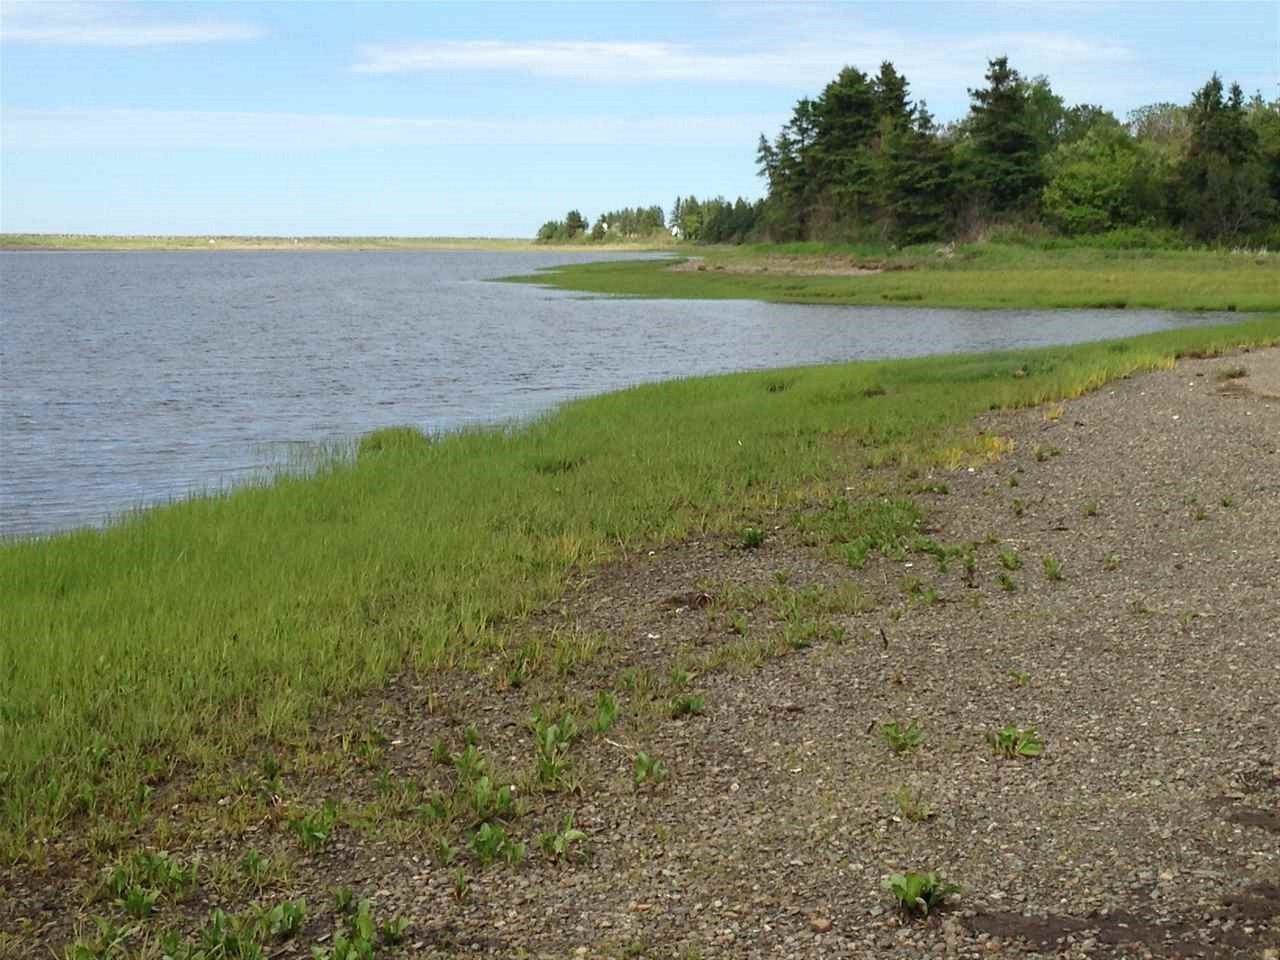 Main Photo: Lot 2 Shore Road in Lower Barneys River: 108-Rural Pictou County Vacant Land for sale (Northern Region)  : MLS®# 202008057